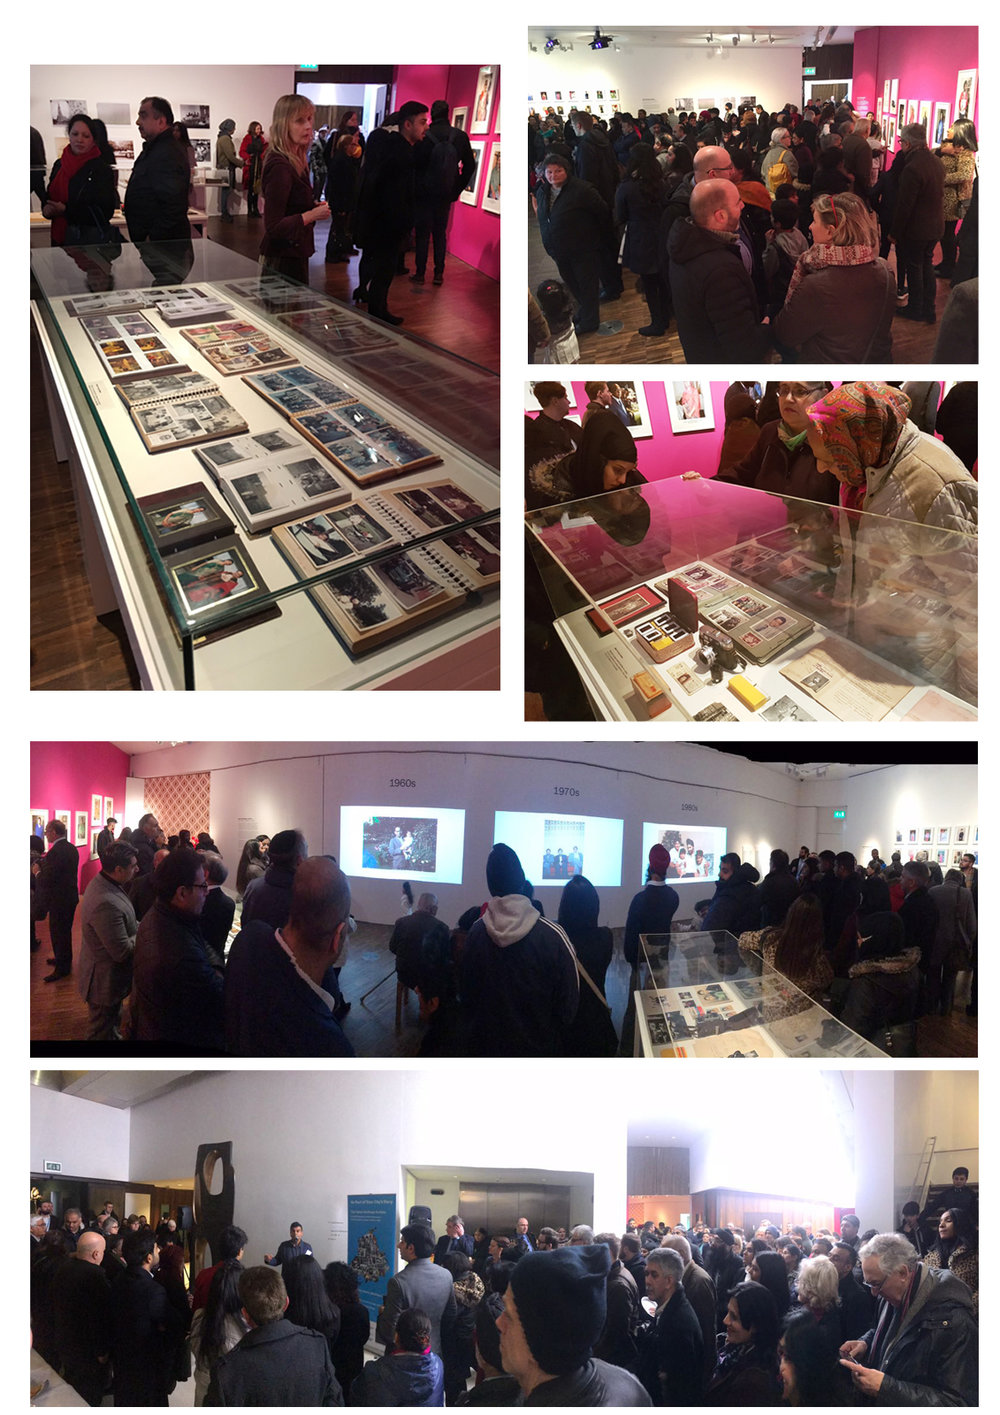 Launch Event at Wolverhampton Art Gallery was packed out as community came to celebrate